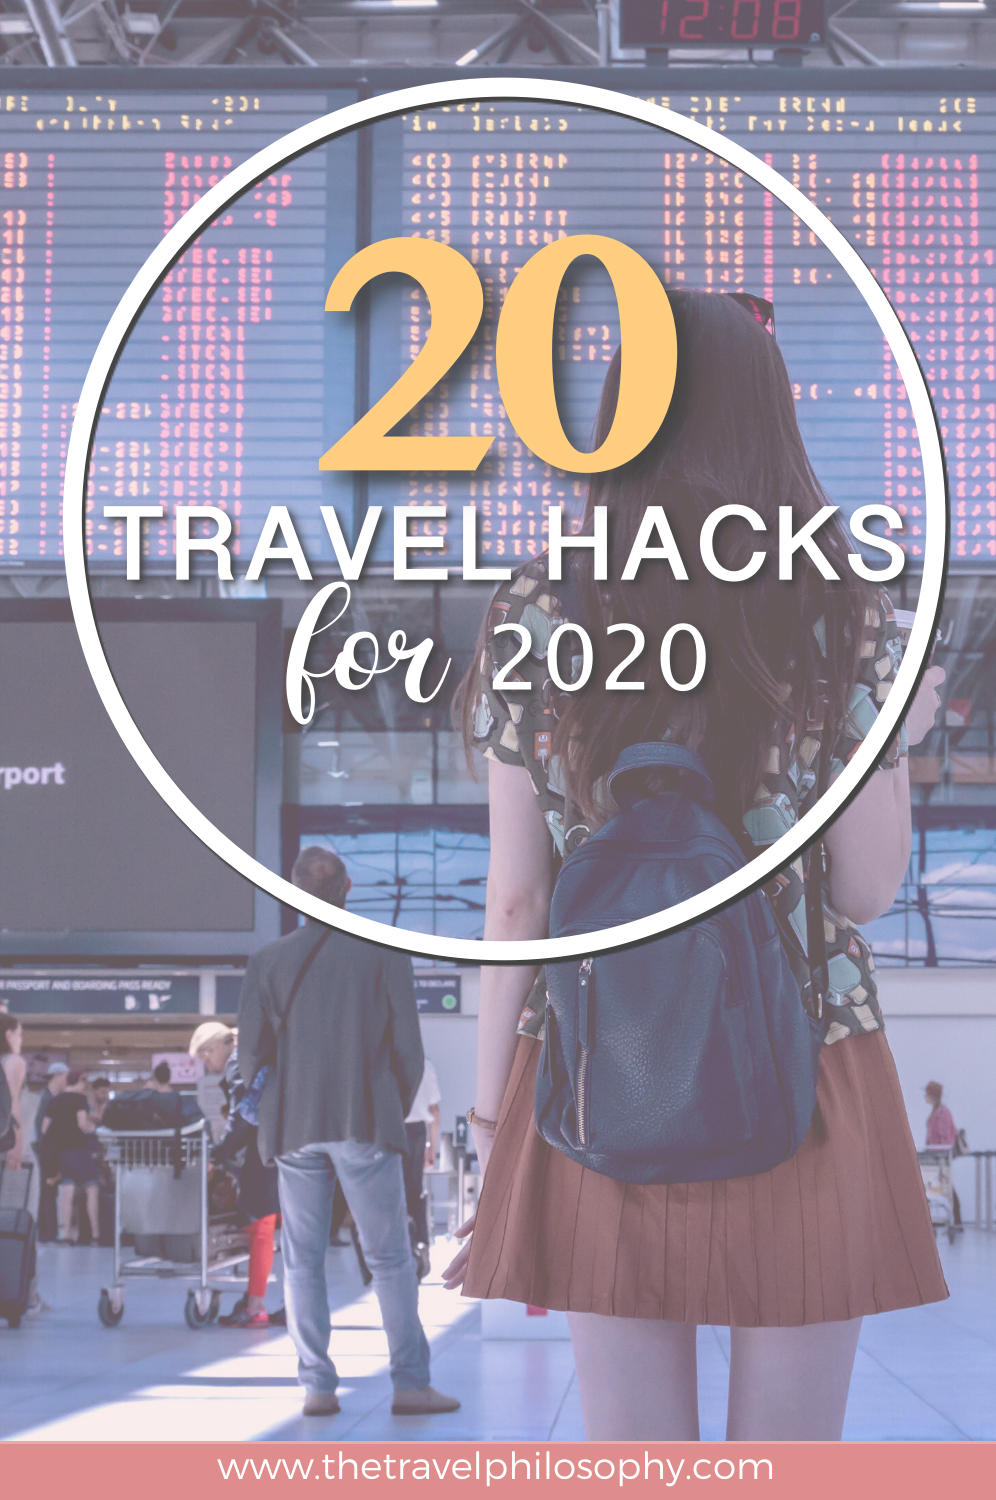 20 Travel Hacks for 2020